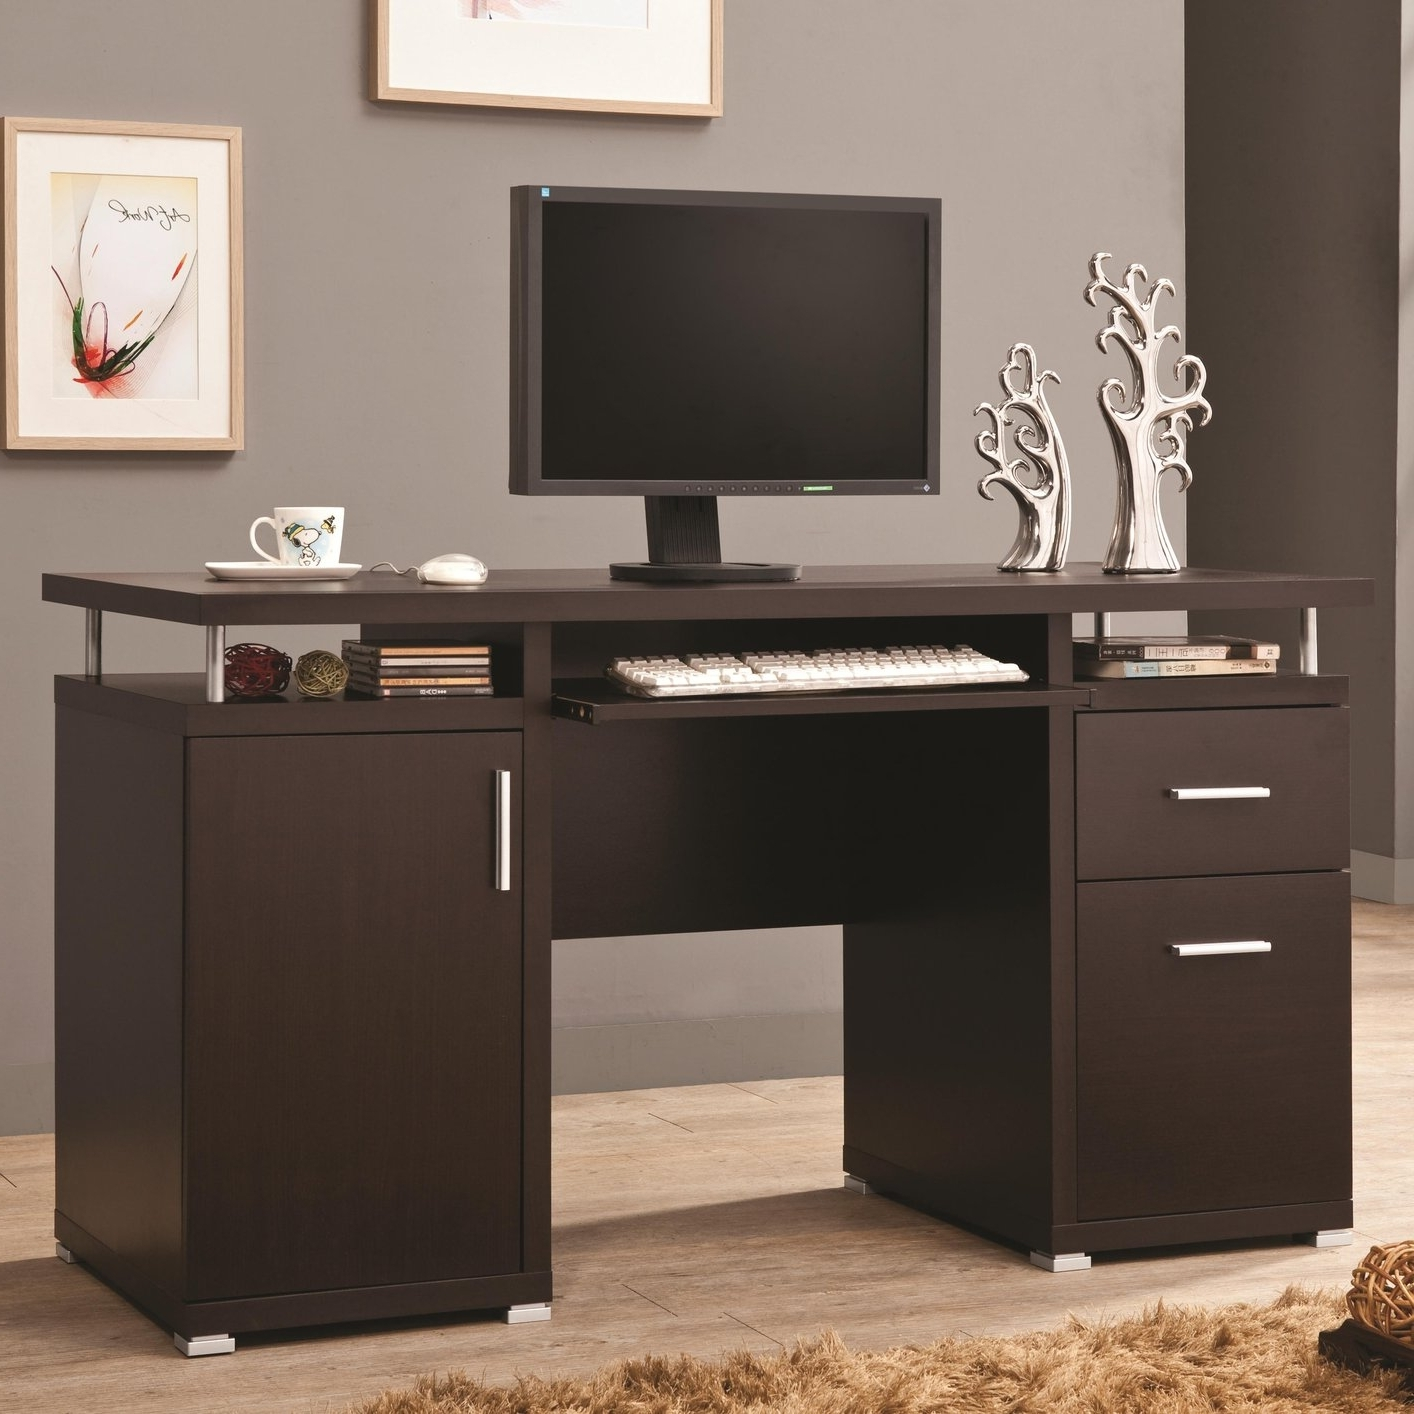 Most Recent Computer Desks With Drawers With Top 78 Superb Home Desk With Hutch Small Computer White Corner (View 13 of 20)